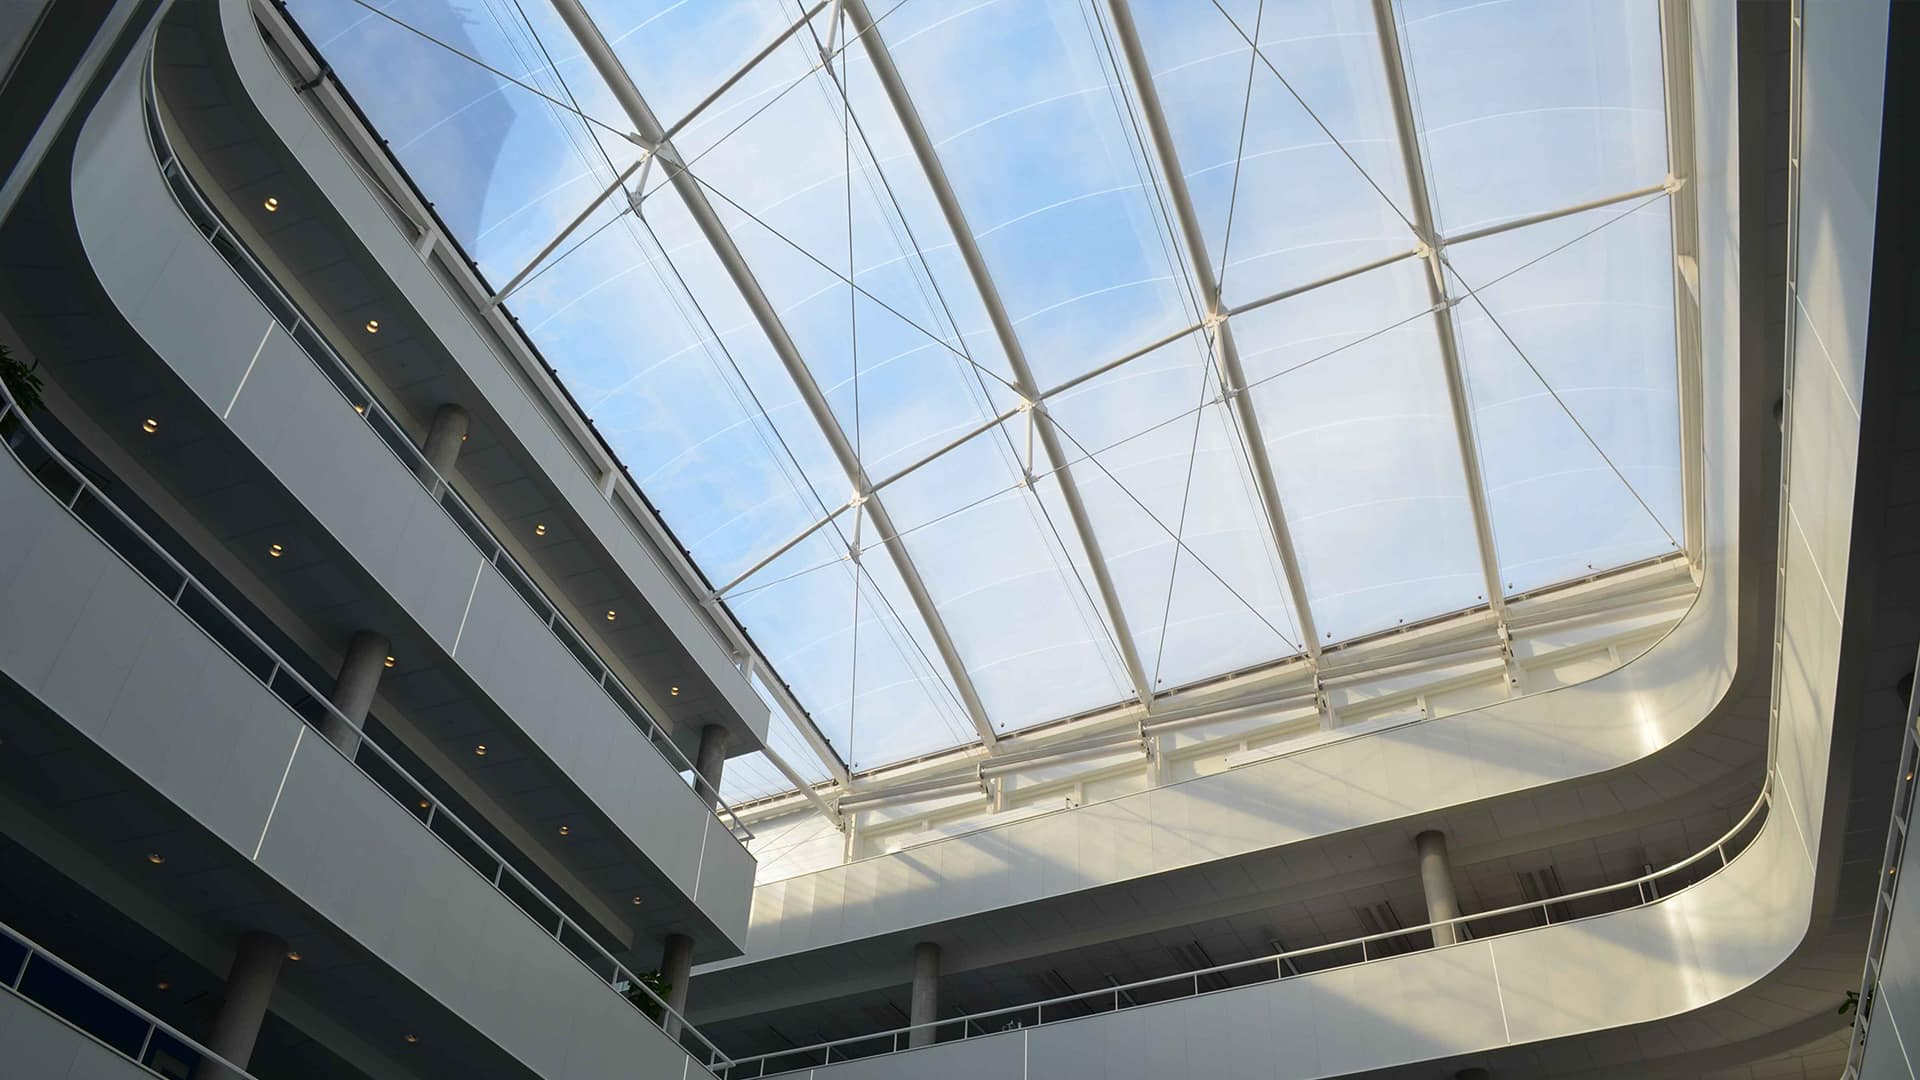 The use of Texlon® ETFE offers significant benefits compared to other transparent cladding systems on both new buildings and refurbishment projects.